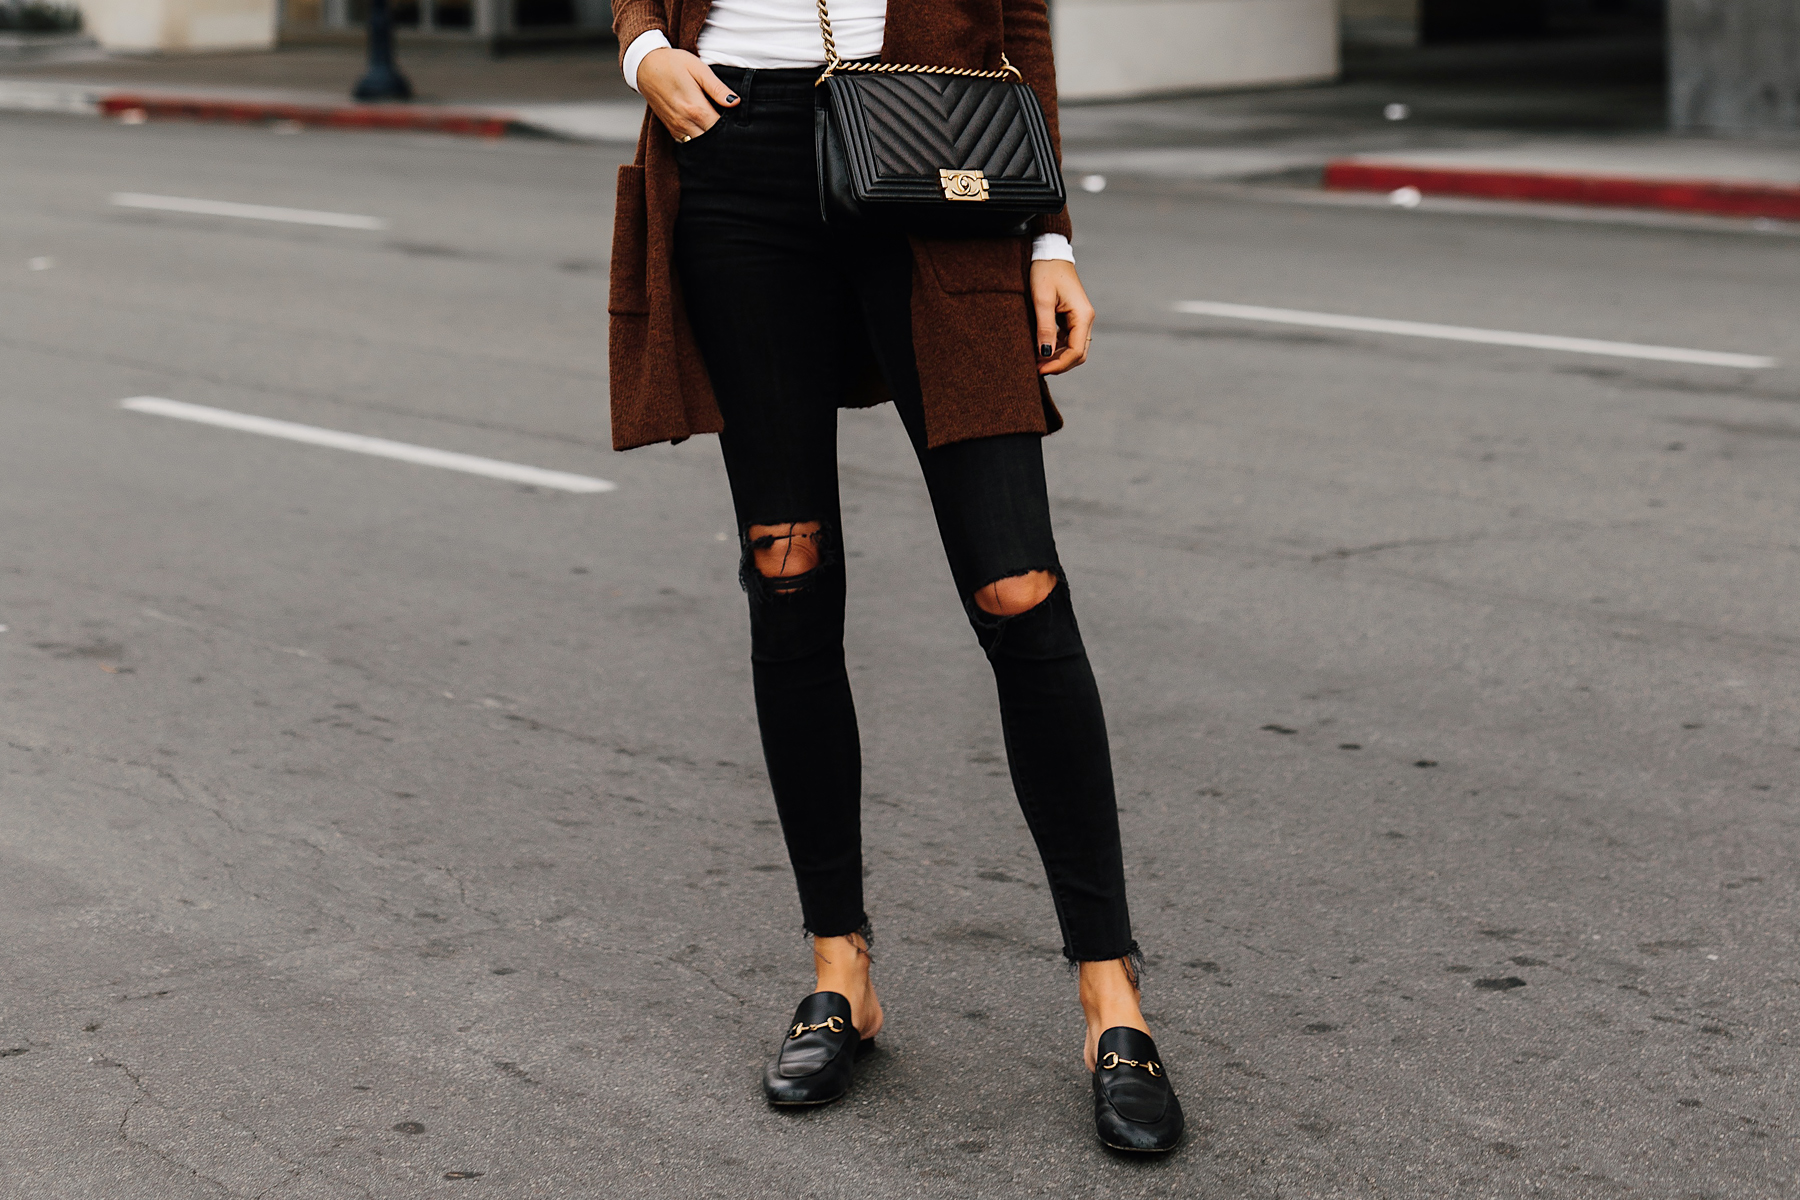 Woman Wearing Madewell Black Ripped Skinny Jeans Gucci Princetown Black Loafer Mules Chanel Black Boy Bag Fashion Jackson San Diego Fashion Blogger Street Style